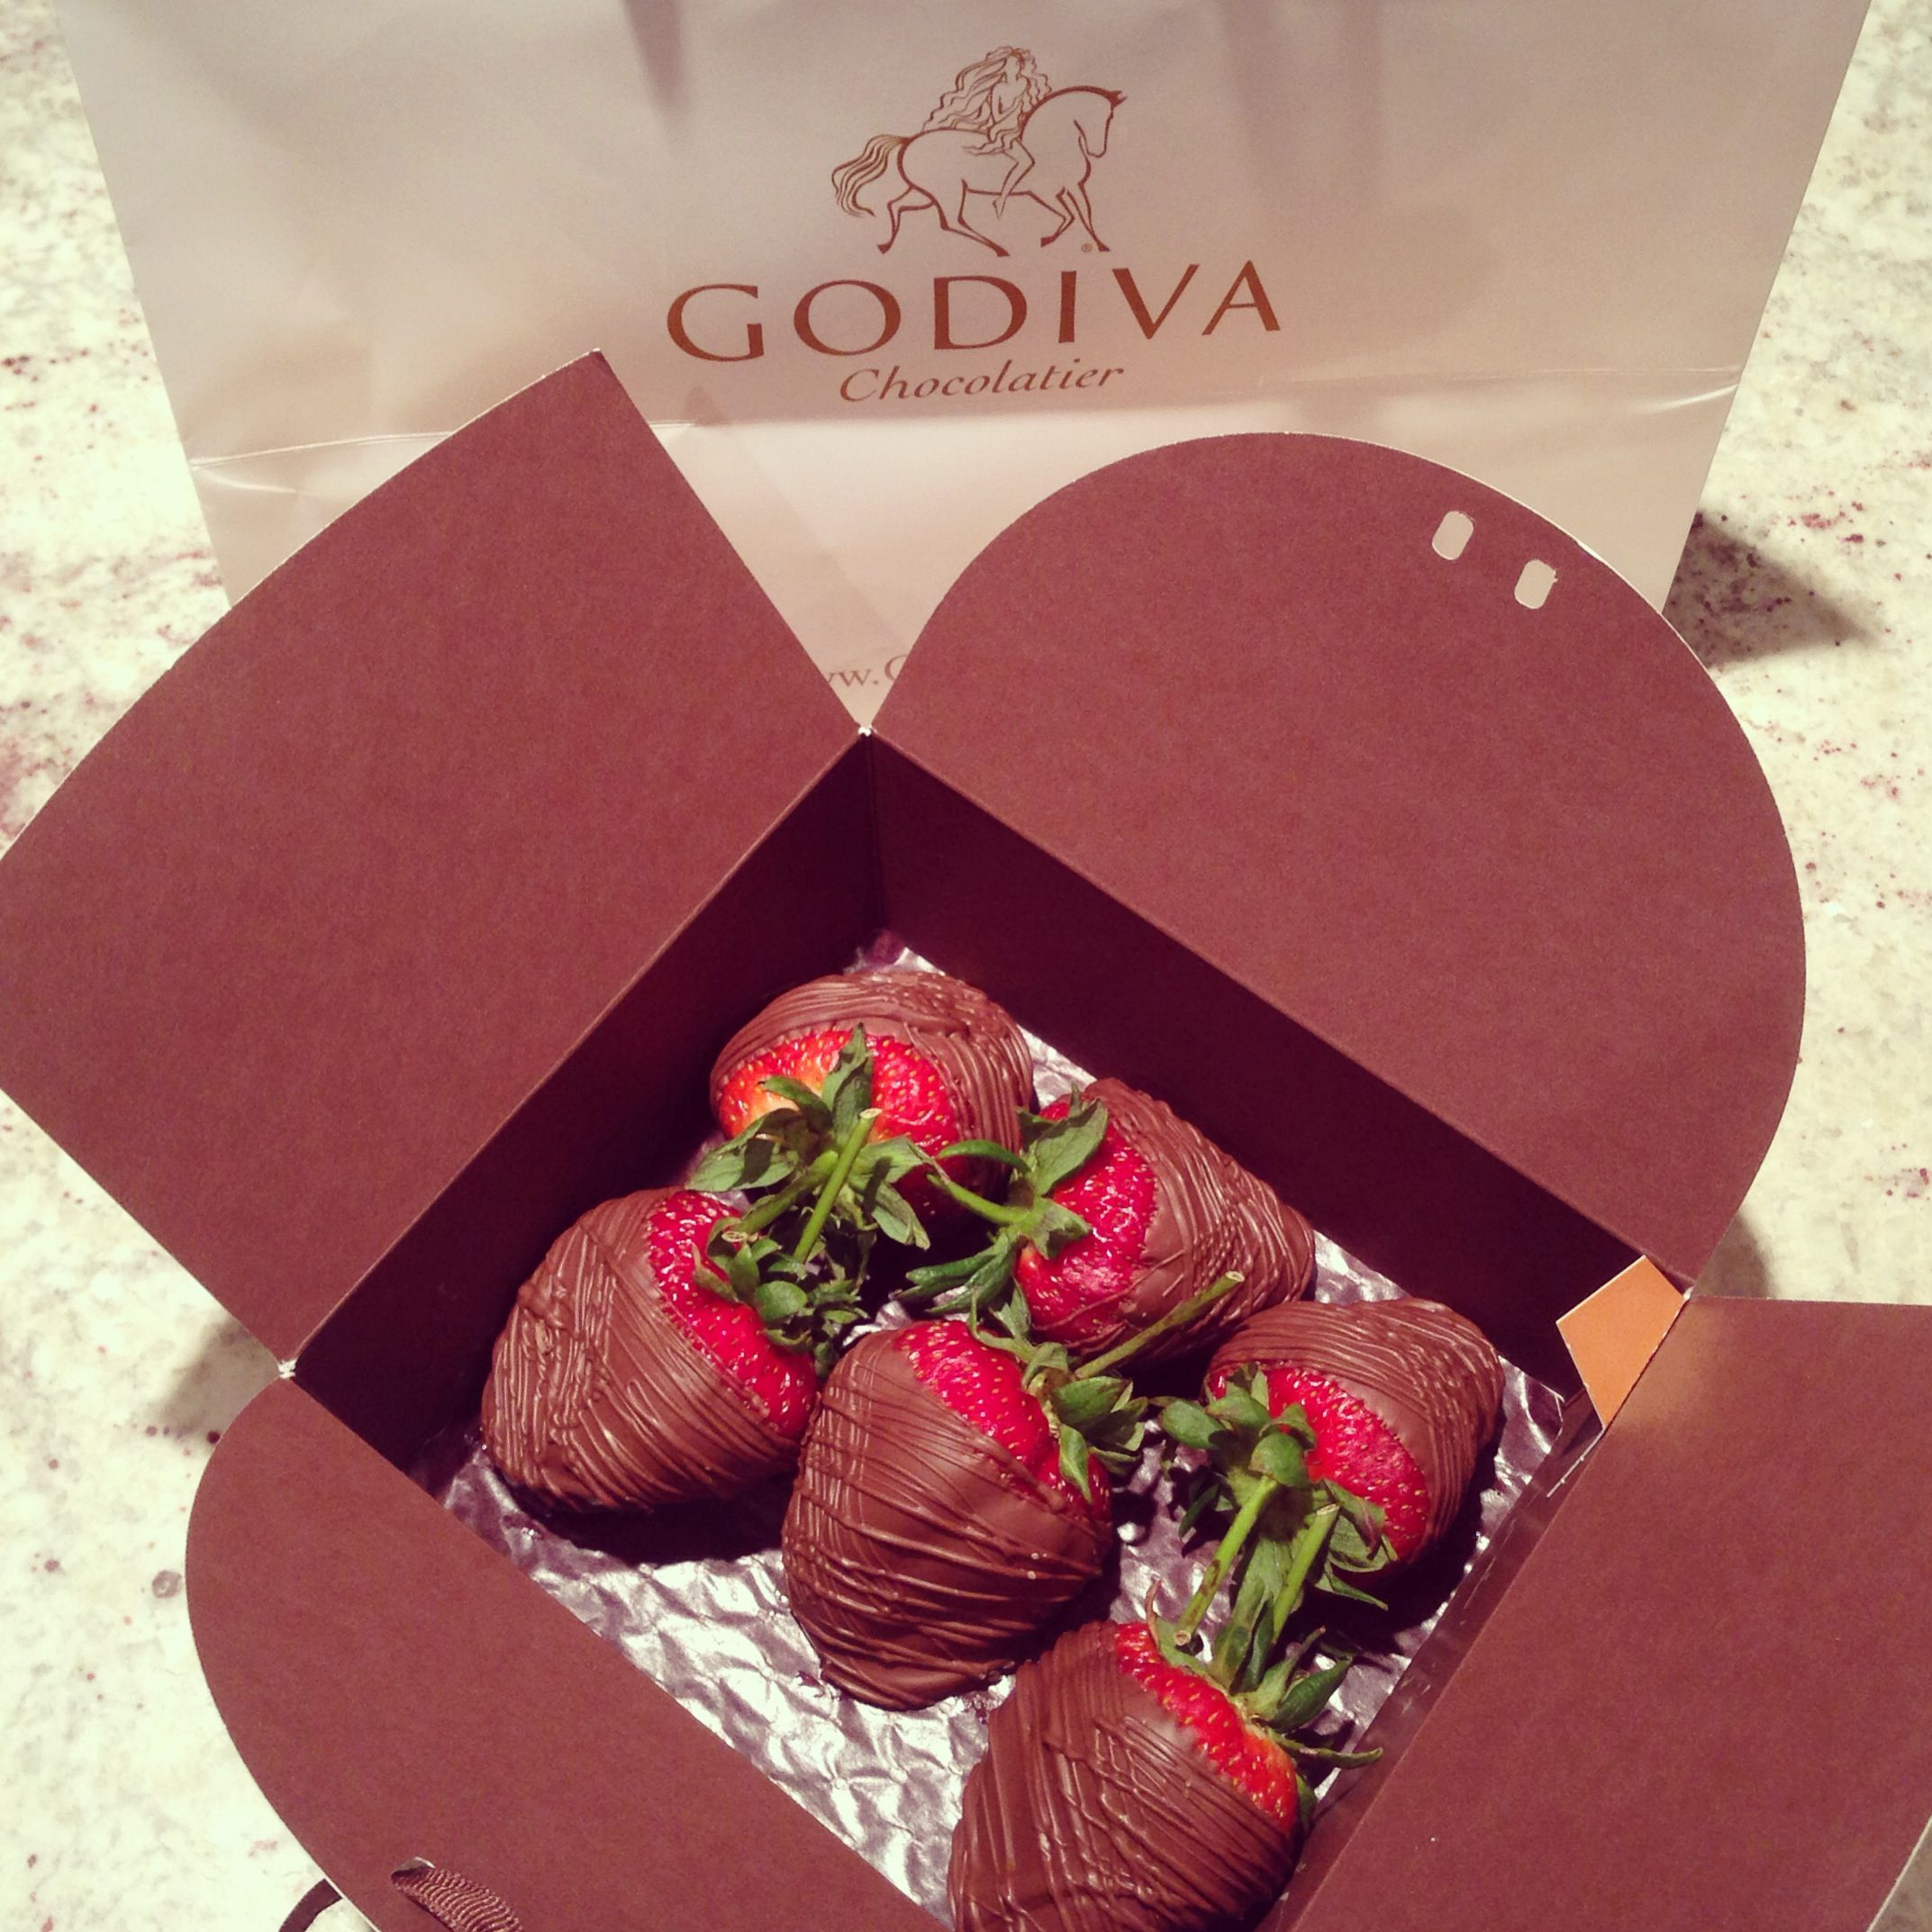 Chocolate covered strawberries #godiva